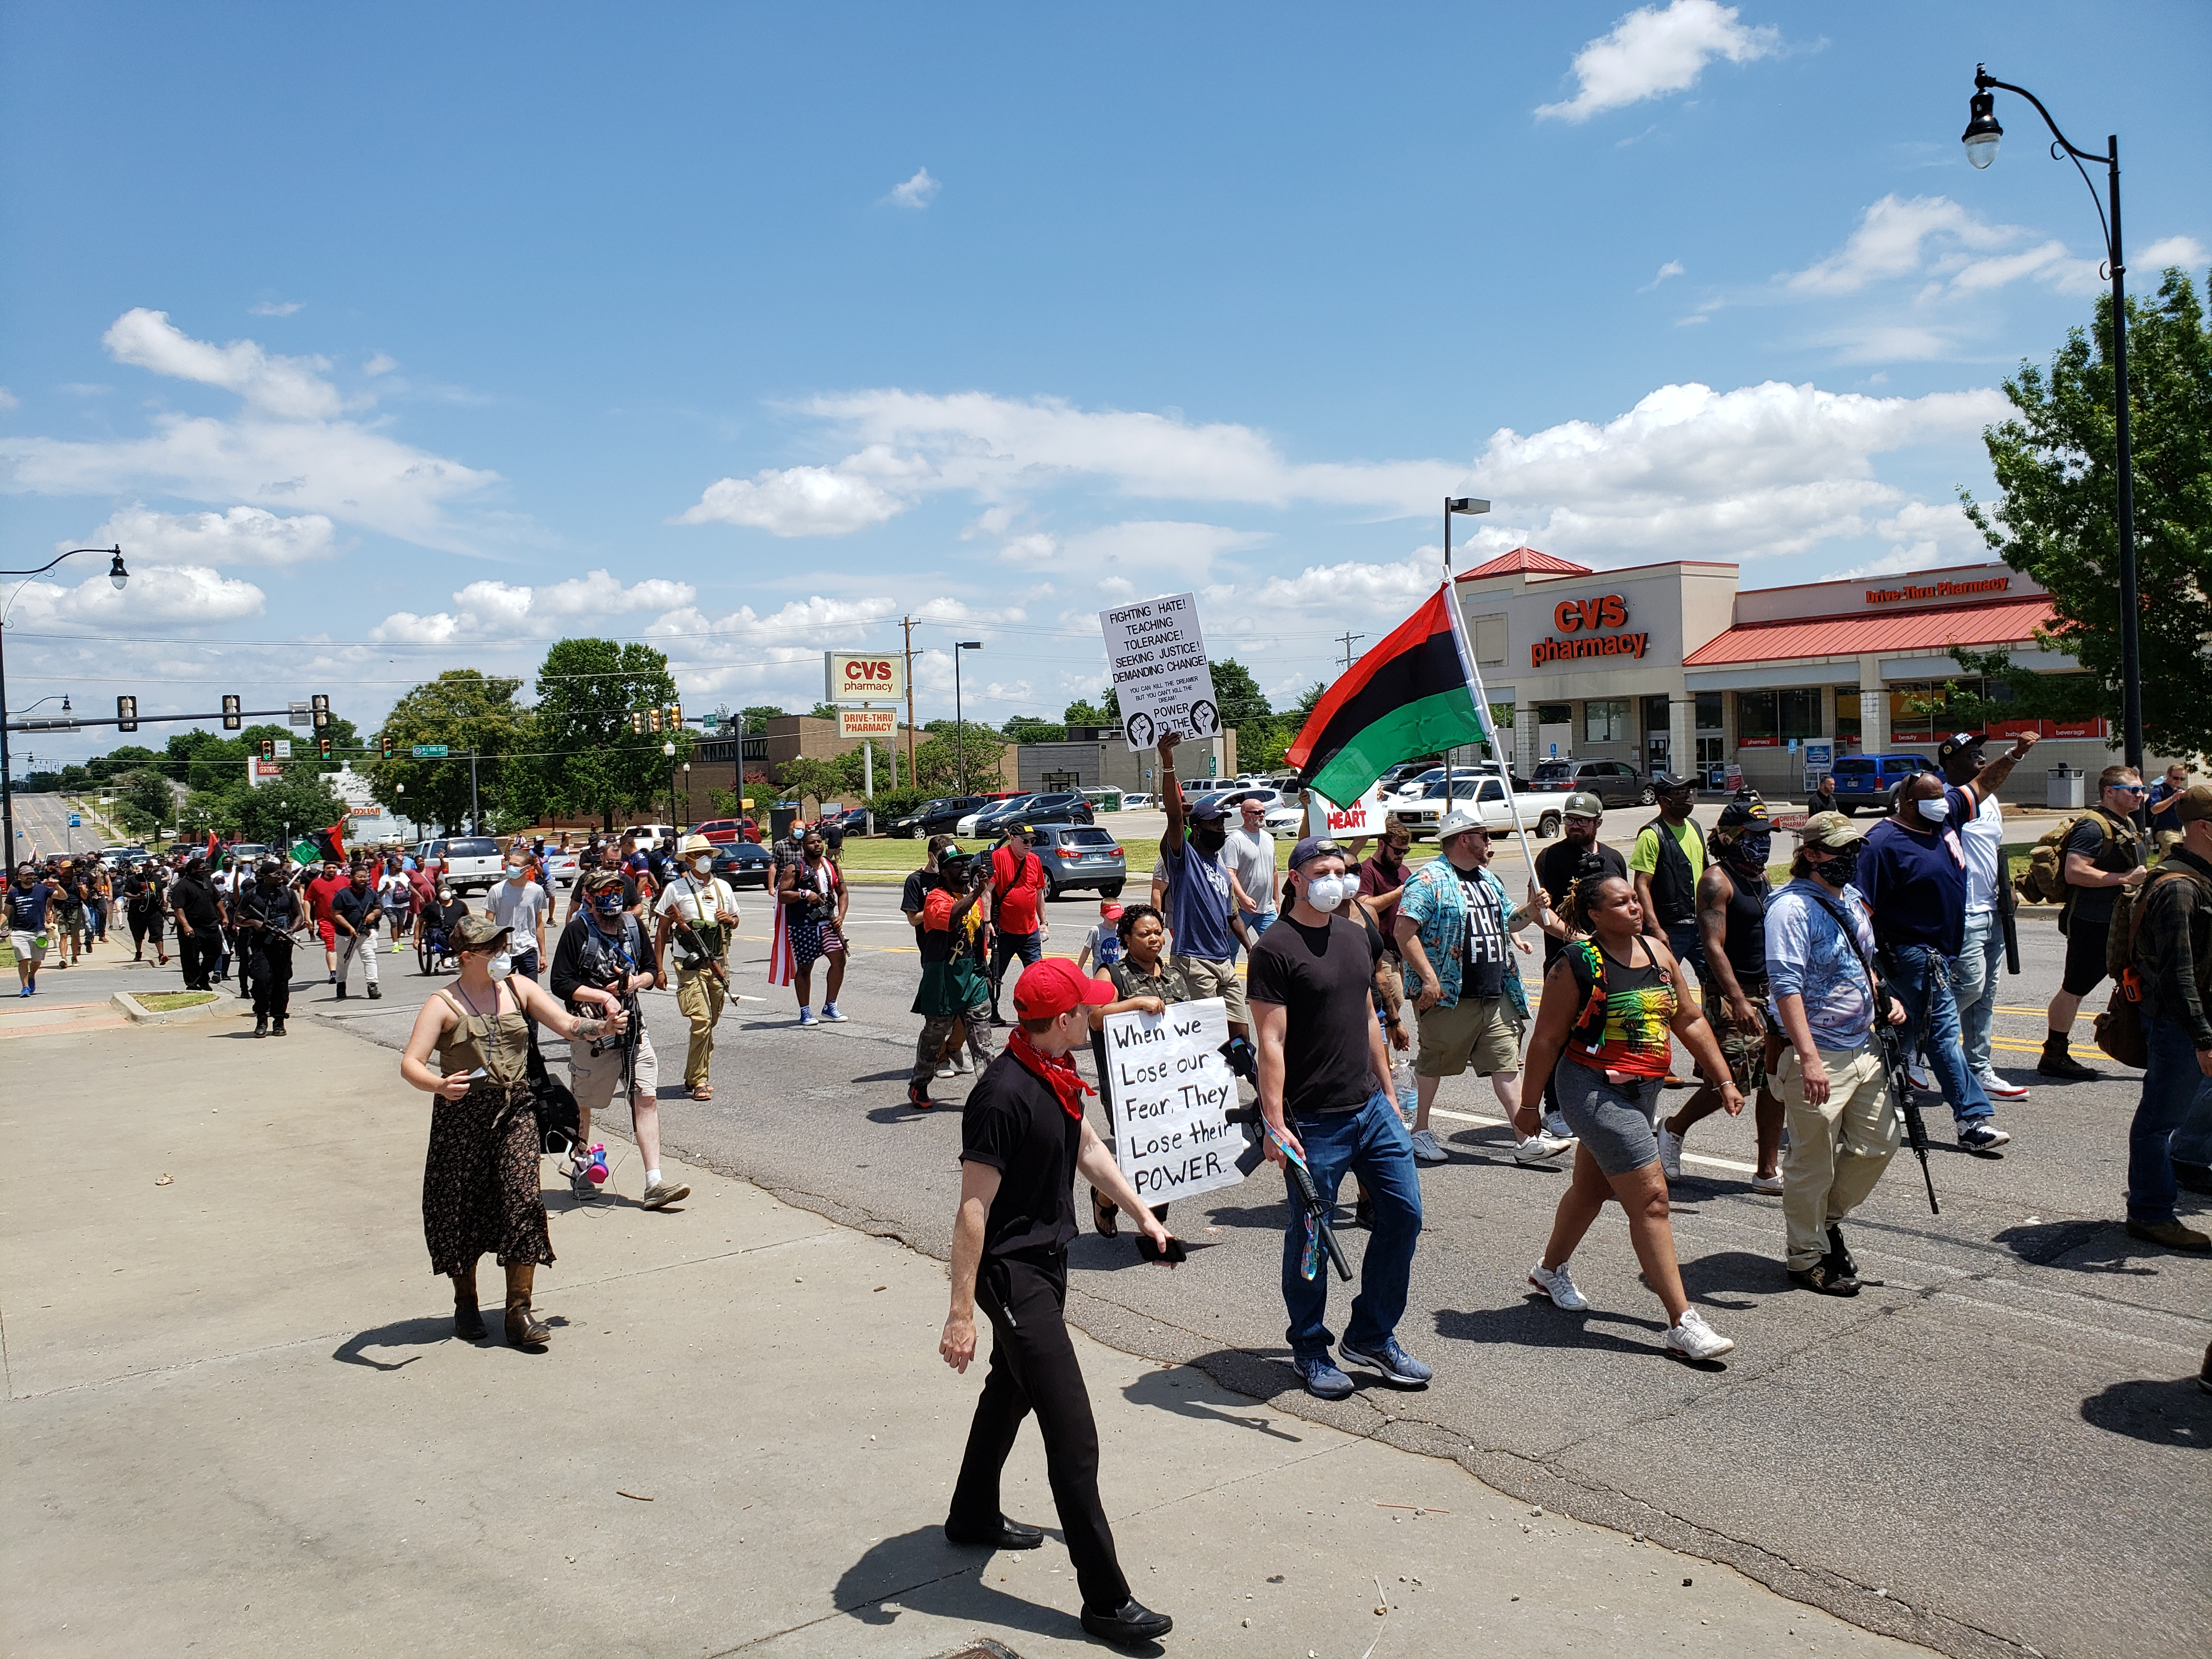 Peaceful Protest in OK Against Police Brutality, photo by Mark L. Friedman